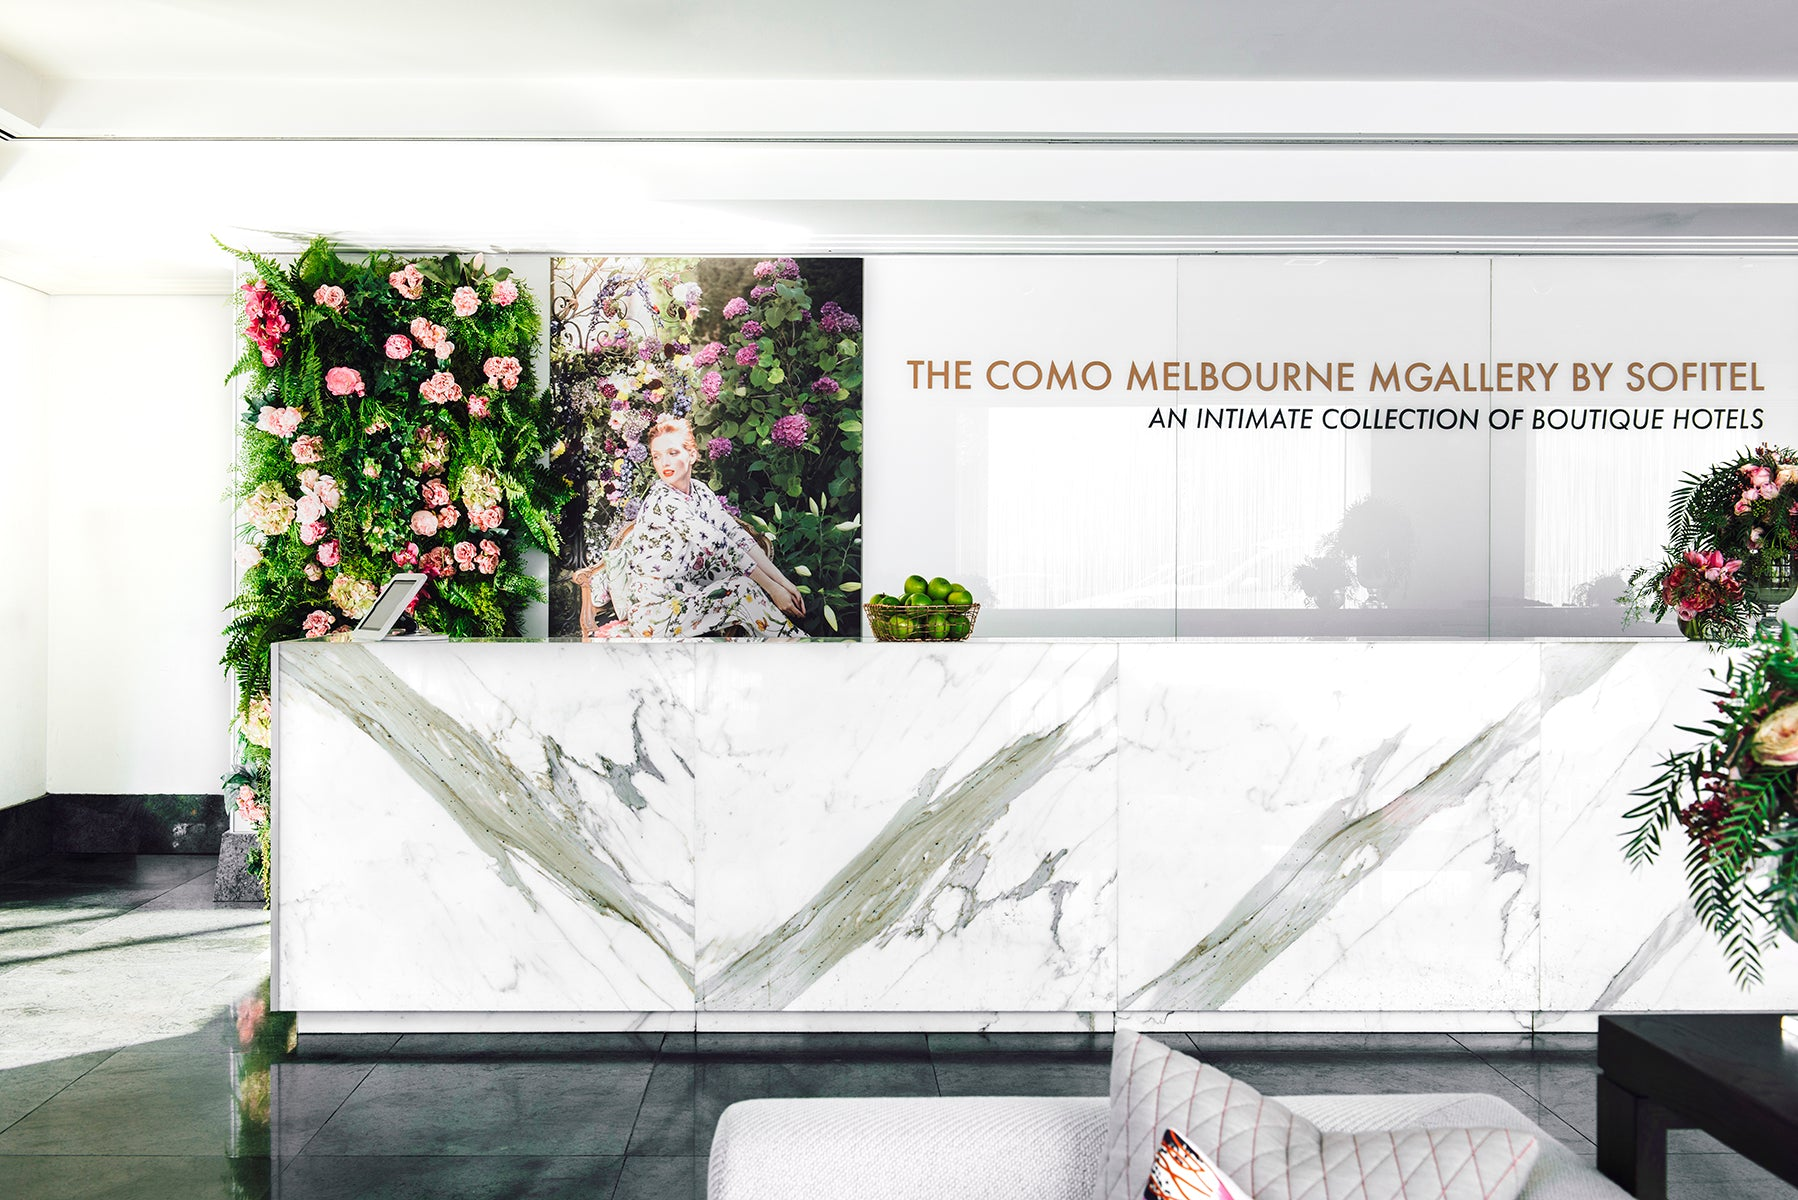 Competition Time! - An Autumn Night In at The Como Melbourne.